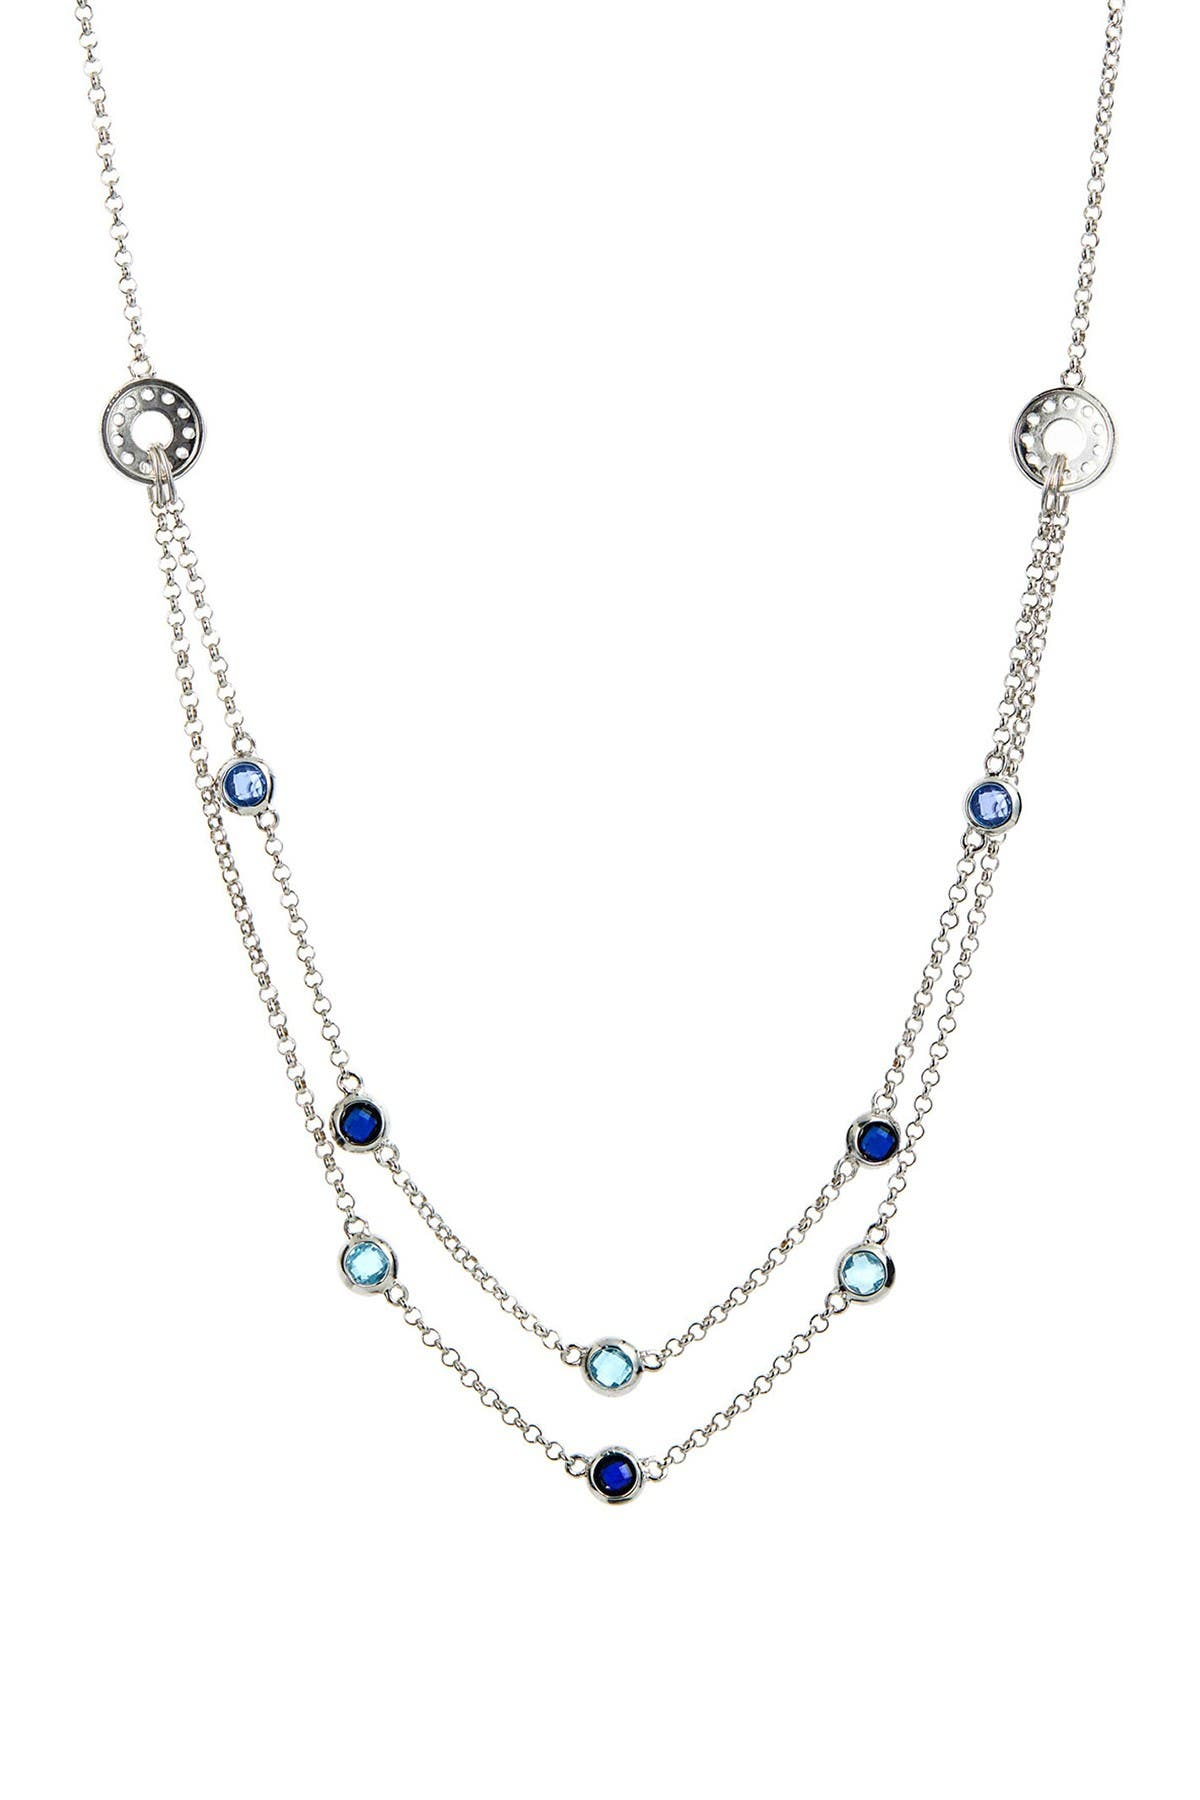 Image of Savvy Cie Sterling Silver Gemstone Necklace